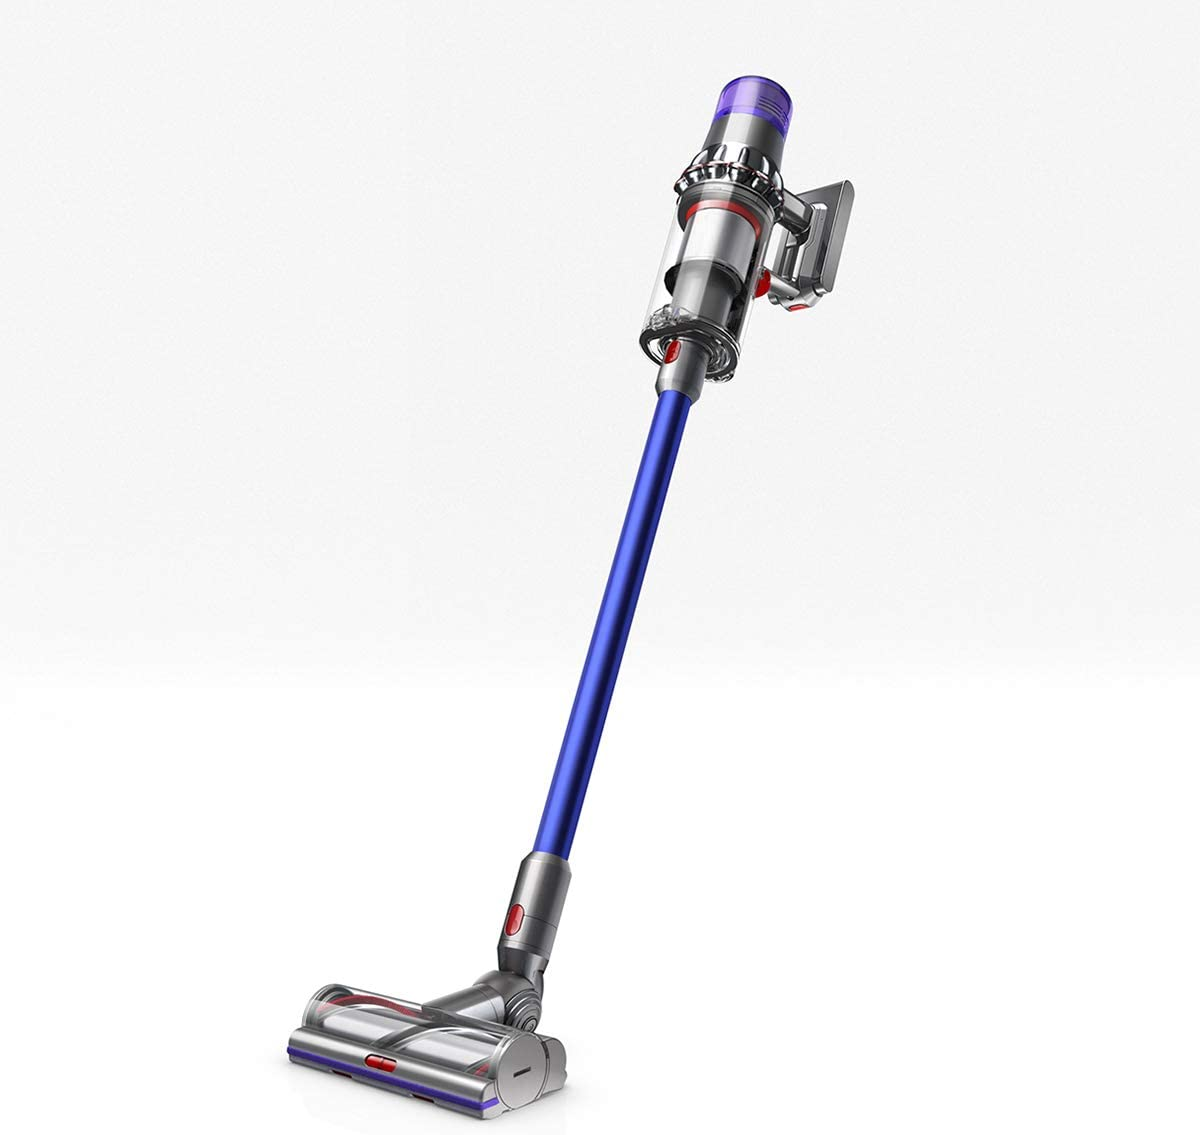 Dyson V11 Torque Drive cordless stick vacuum cleaner